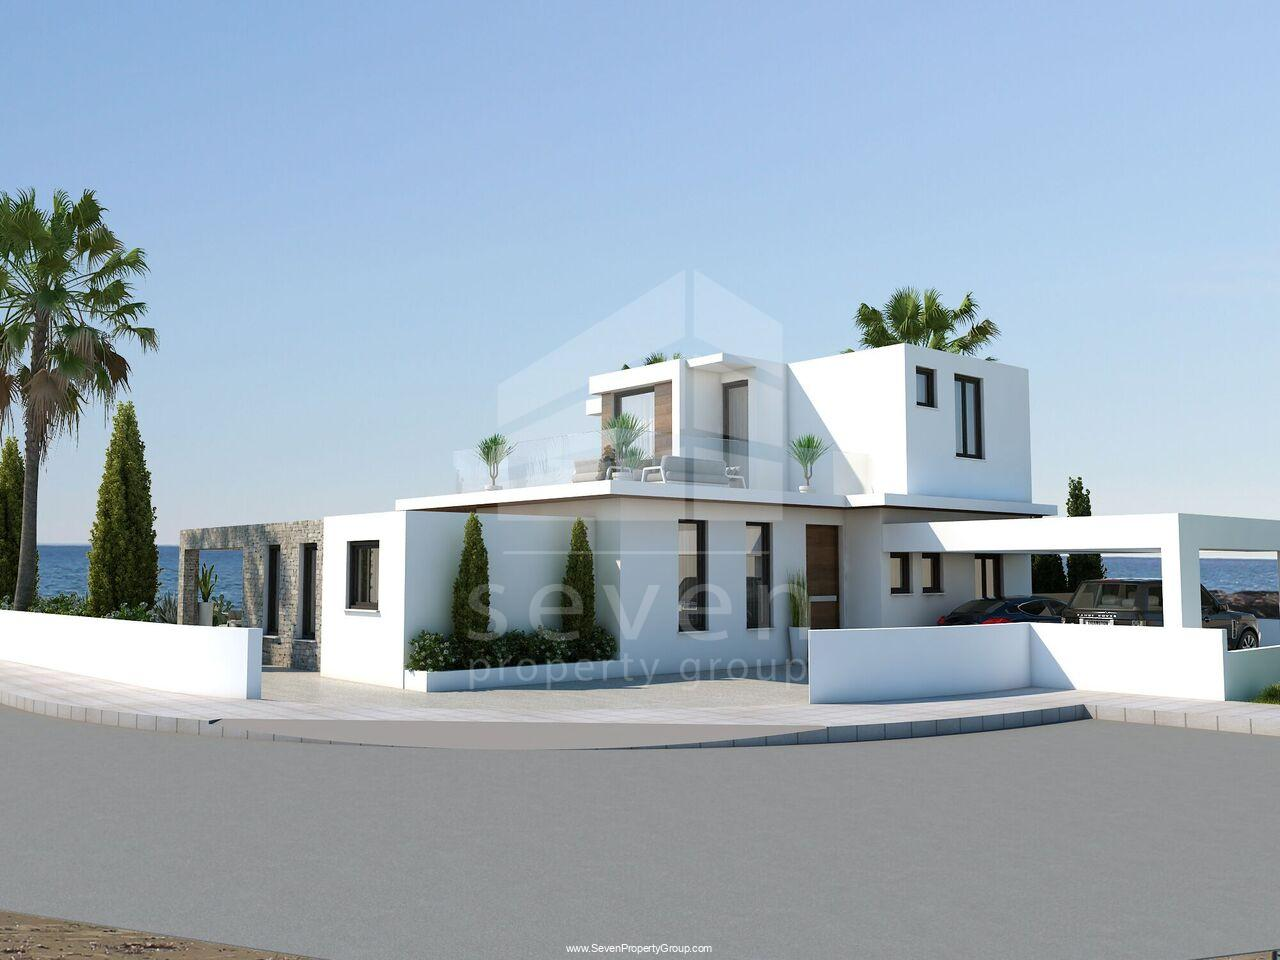 4&6BED BEACH FRONT HOUSES FOR SALE IN Ayia Thekla